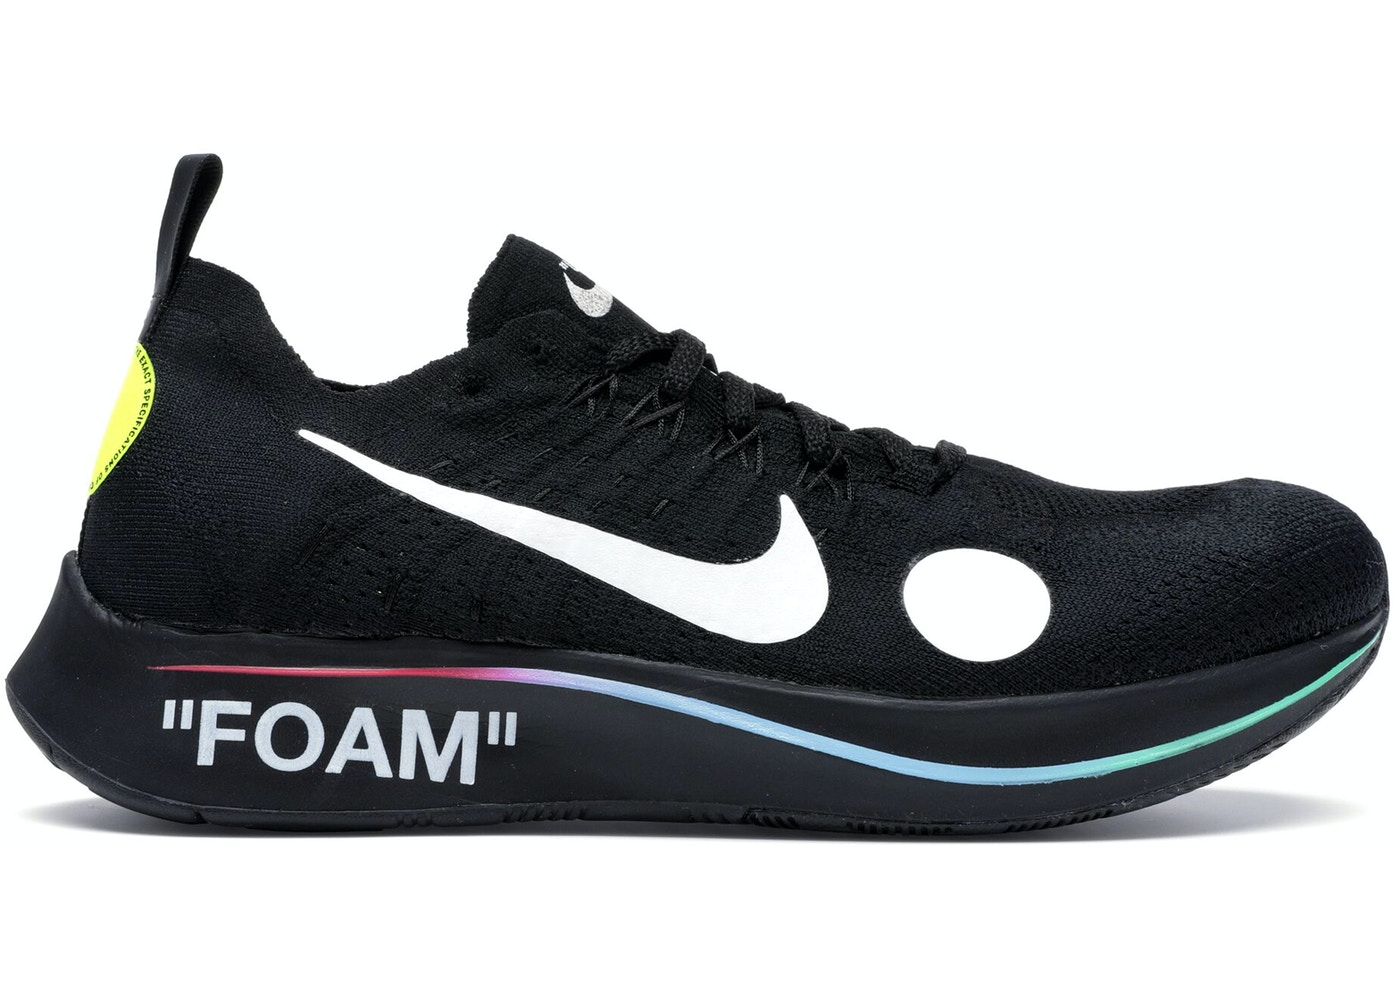 f9c0aa03b03f Nike Zoom Fly Mercurial Off-White Black - AO2115-001